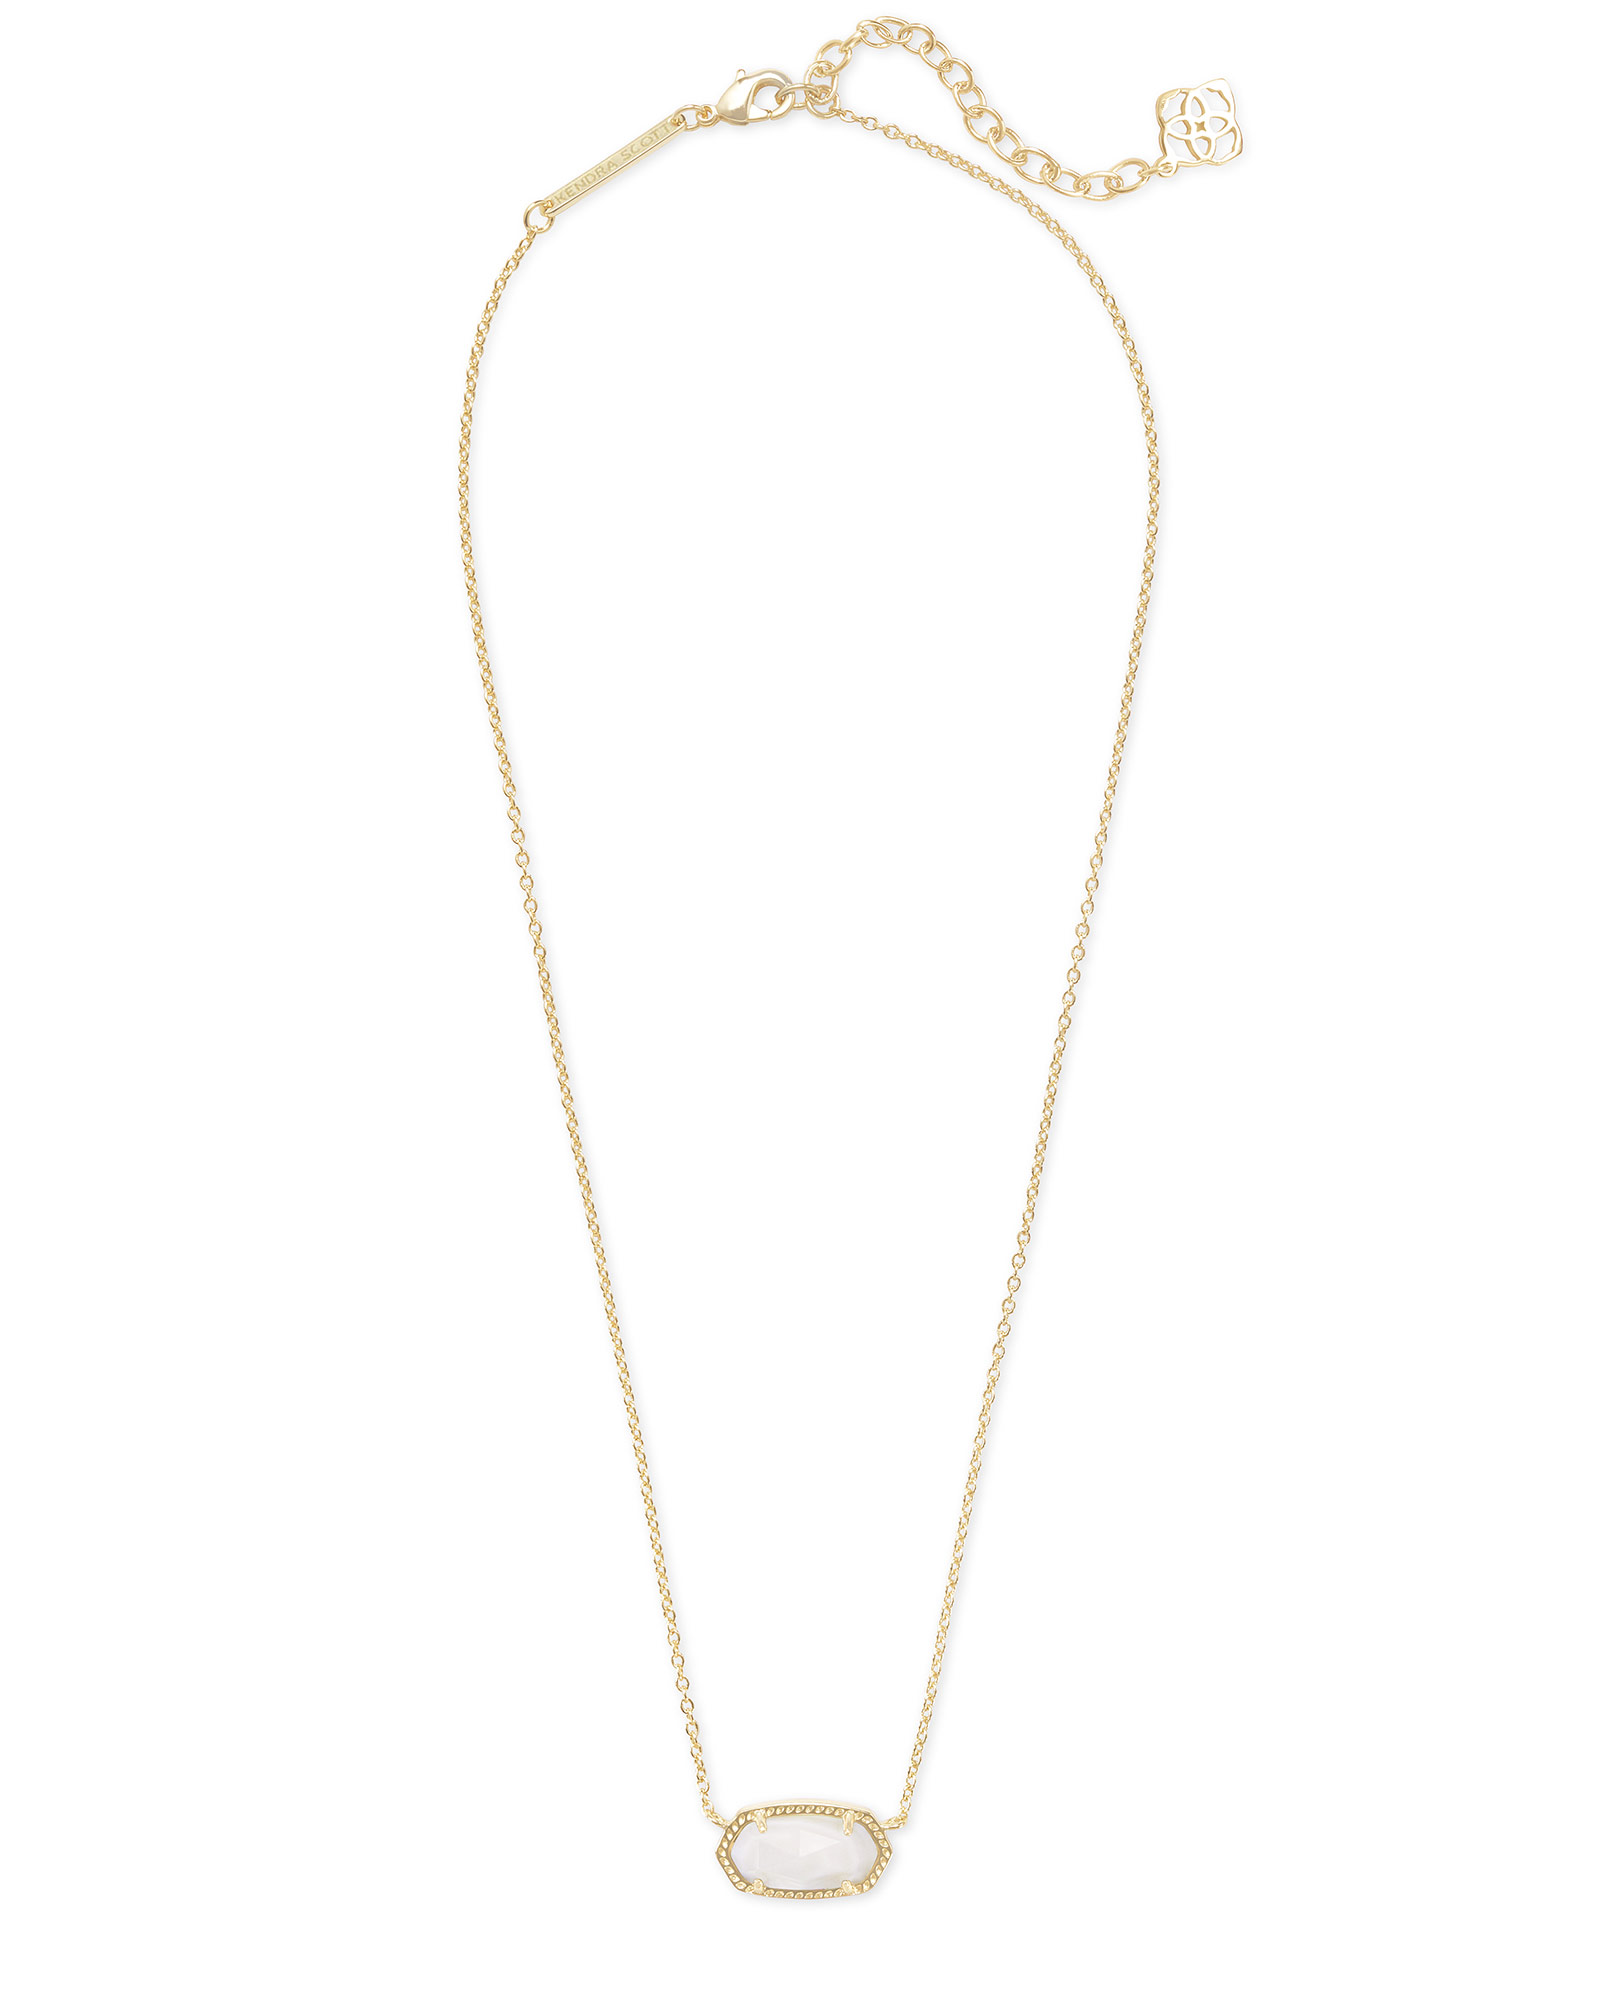 693063ad7cb Elisa Gold Pendant Necklace in White Mother-of-Pearl | Kendra Scott